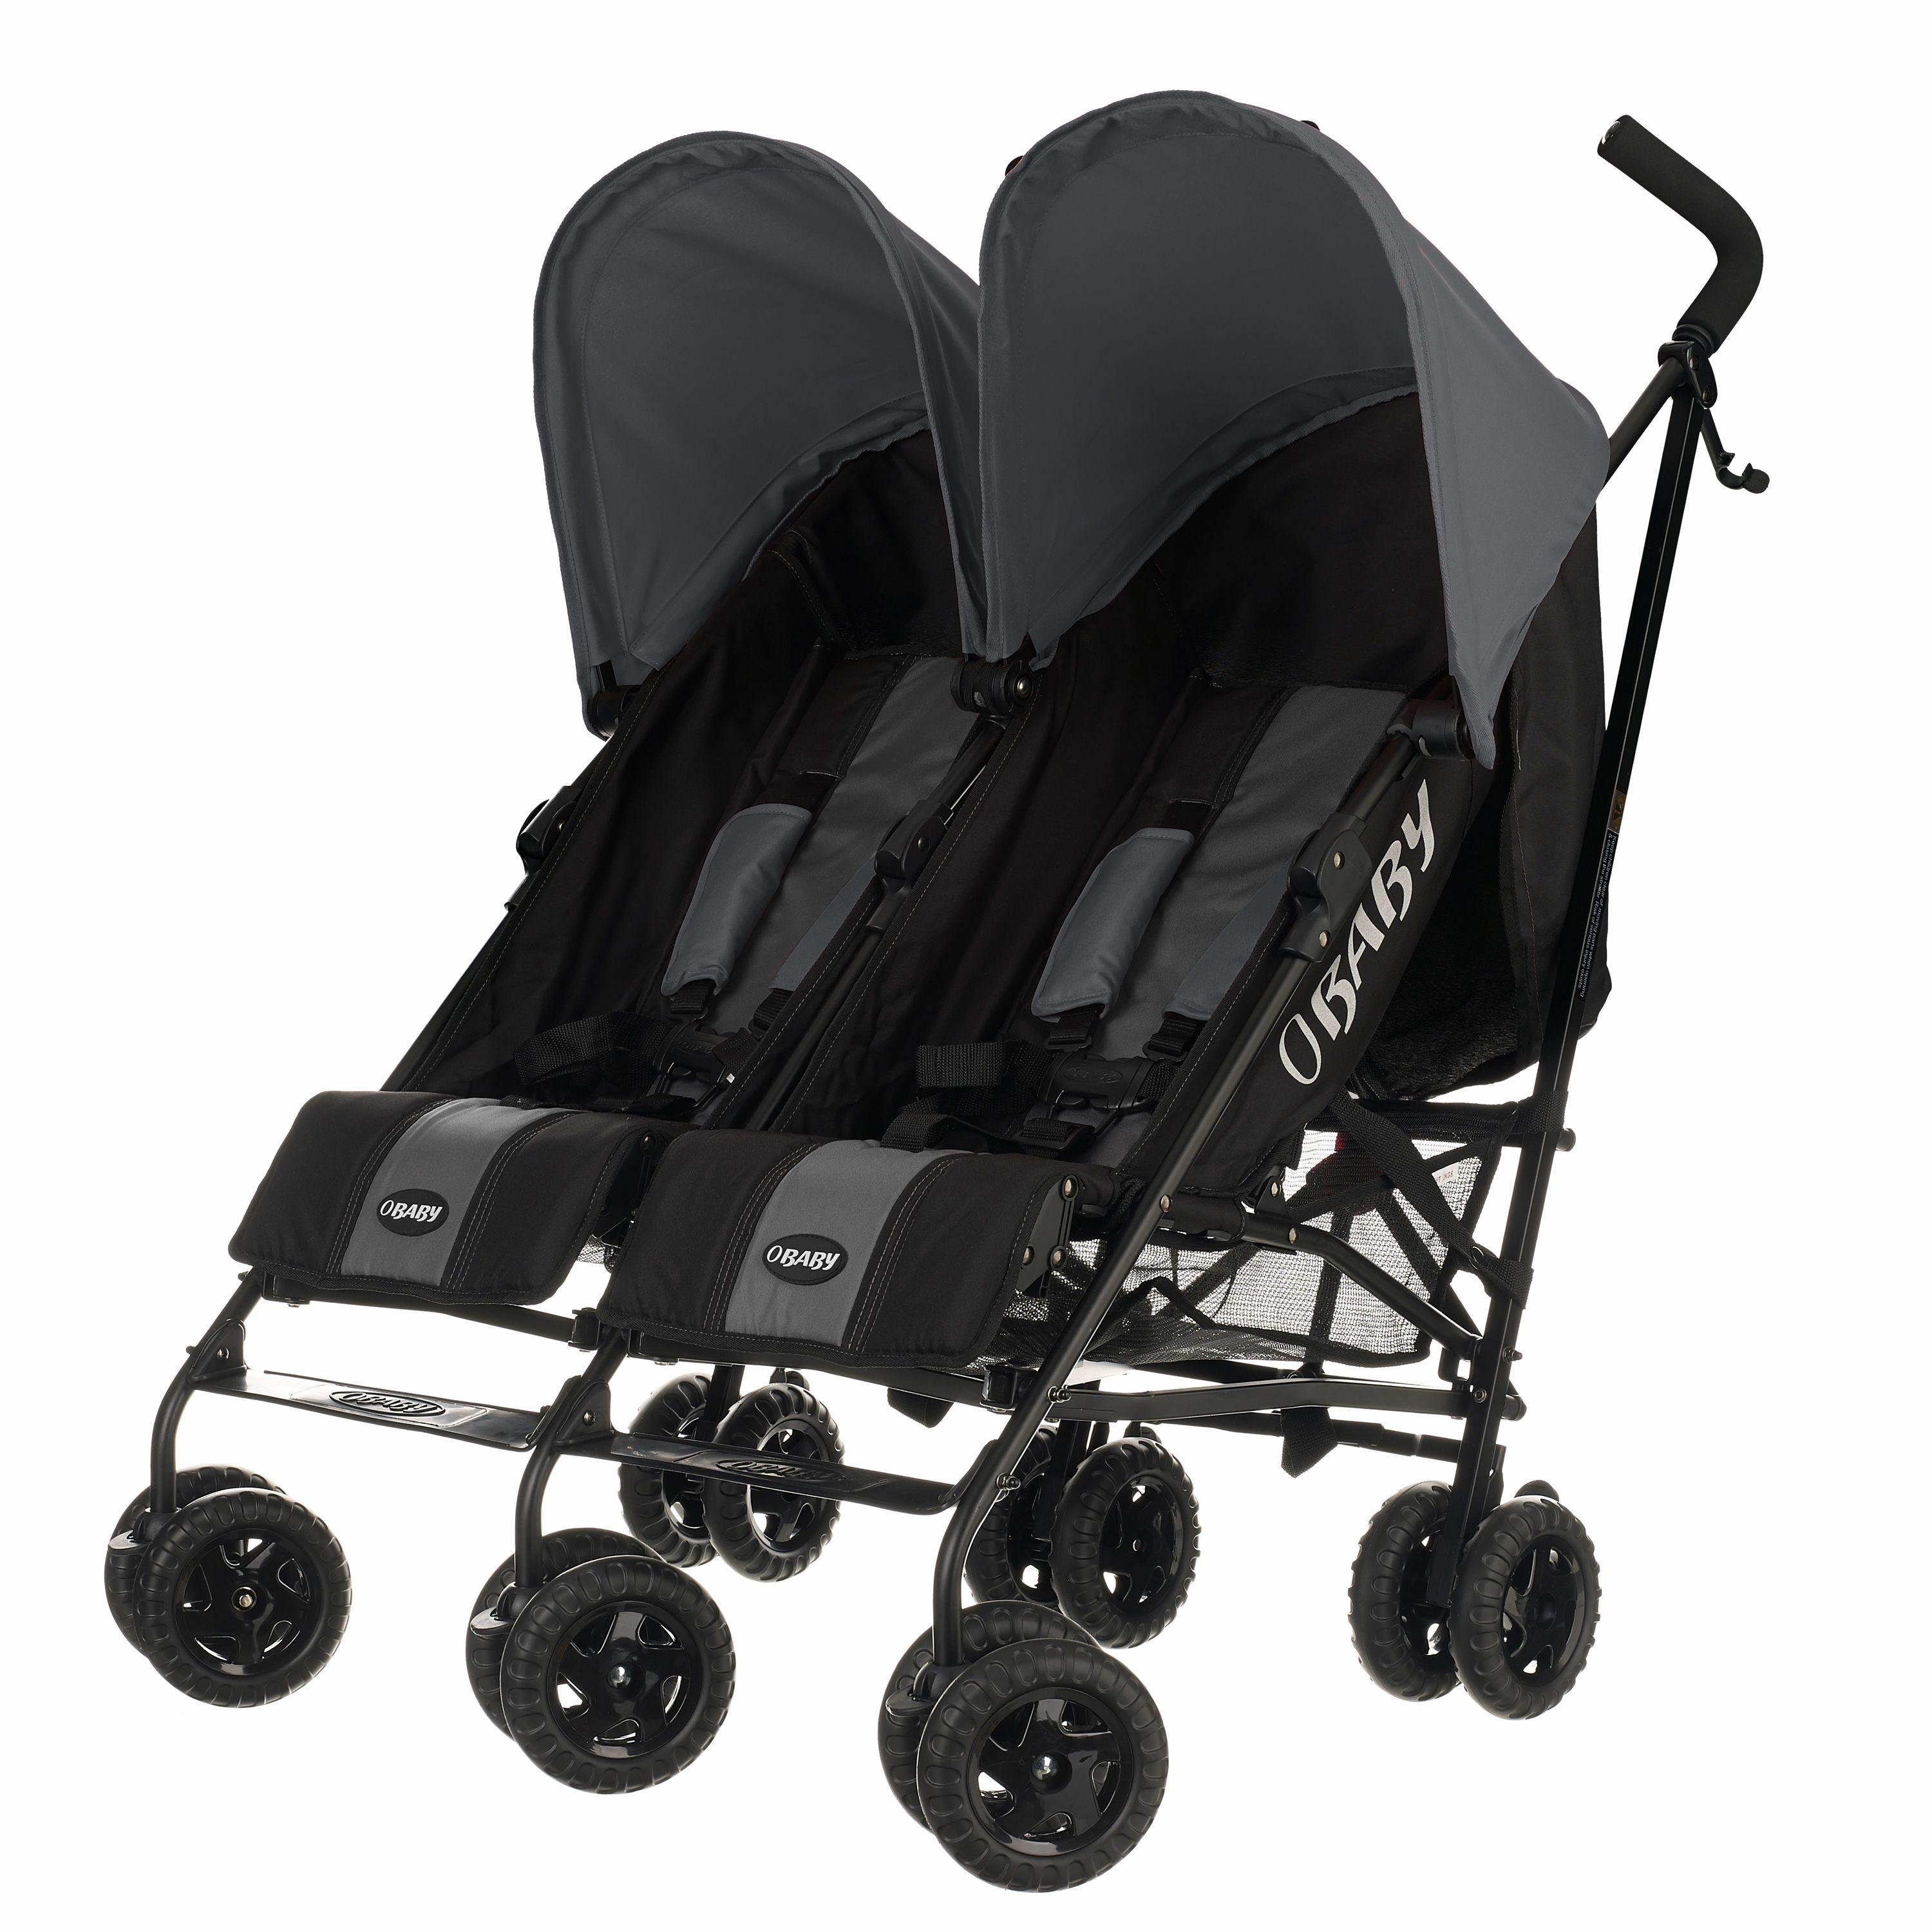 Obaby Apollo Black and Grey Twin Stroller - Grey